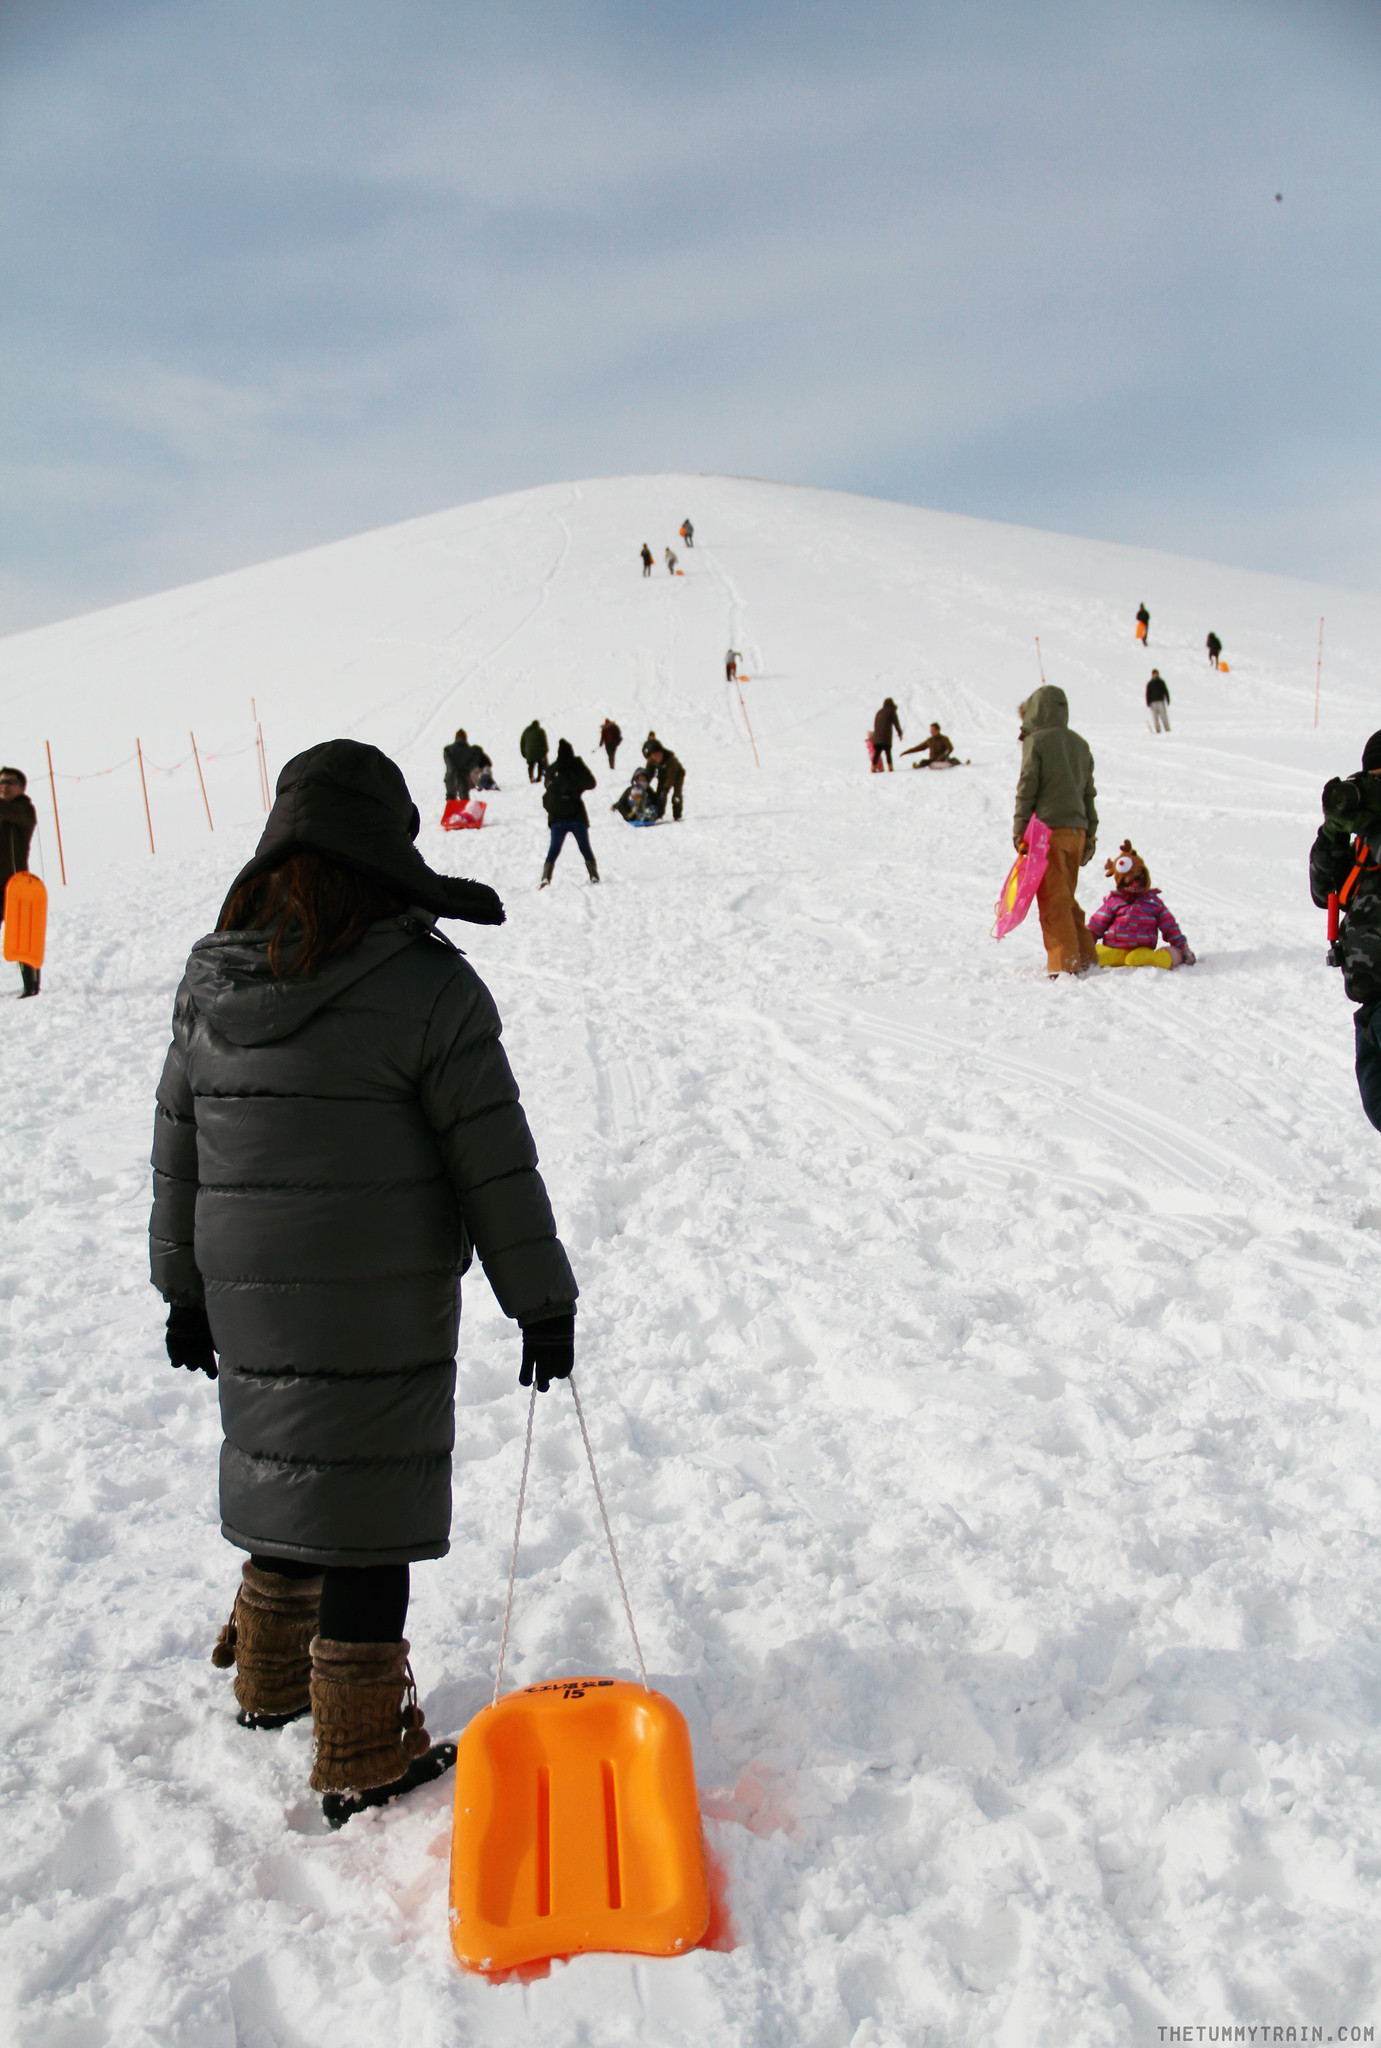 32792650641 9bef99de57 k - Sapporo Travel Diary 2017: Having a grand old time at Moerenuma Park